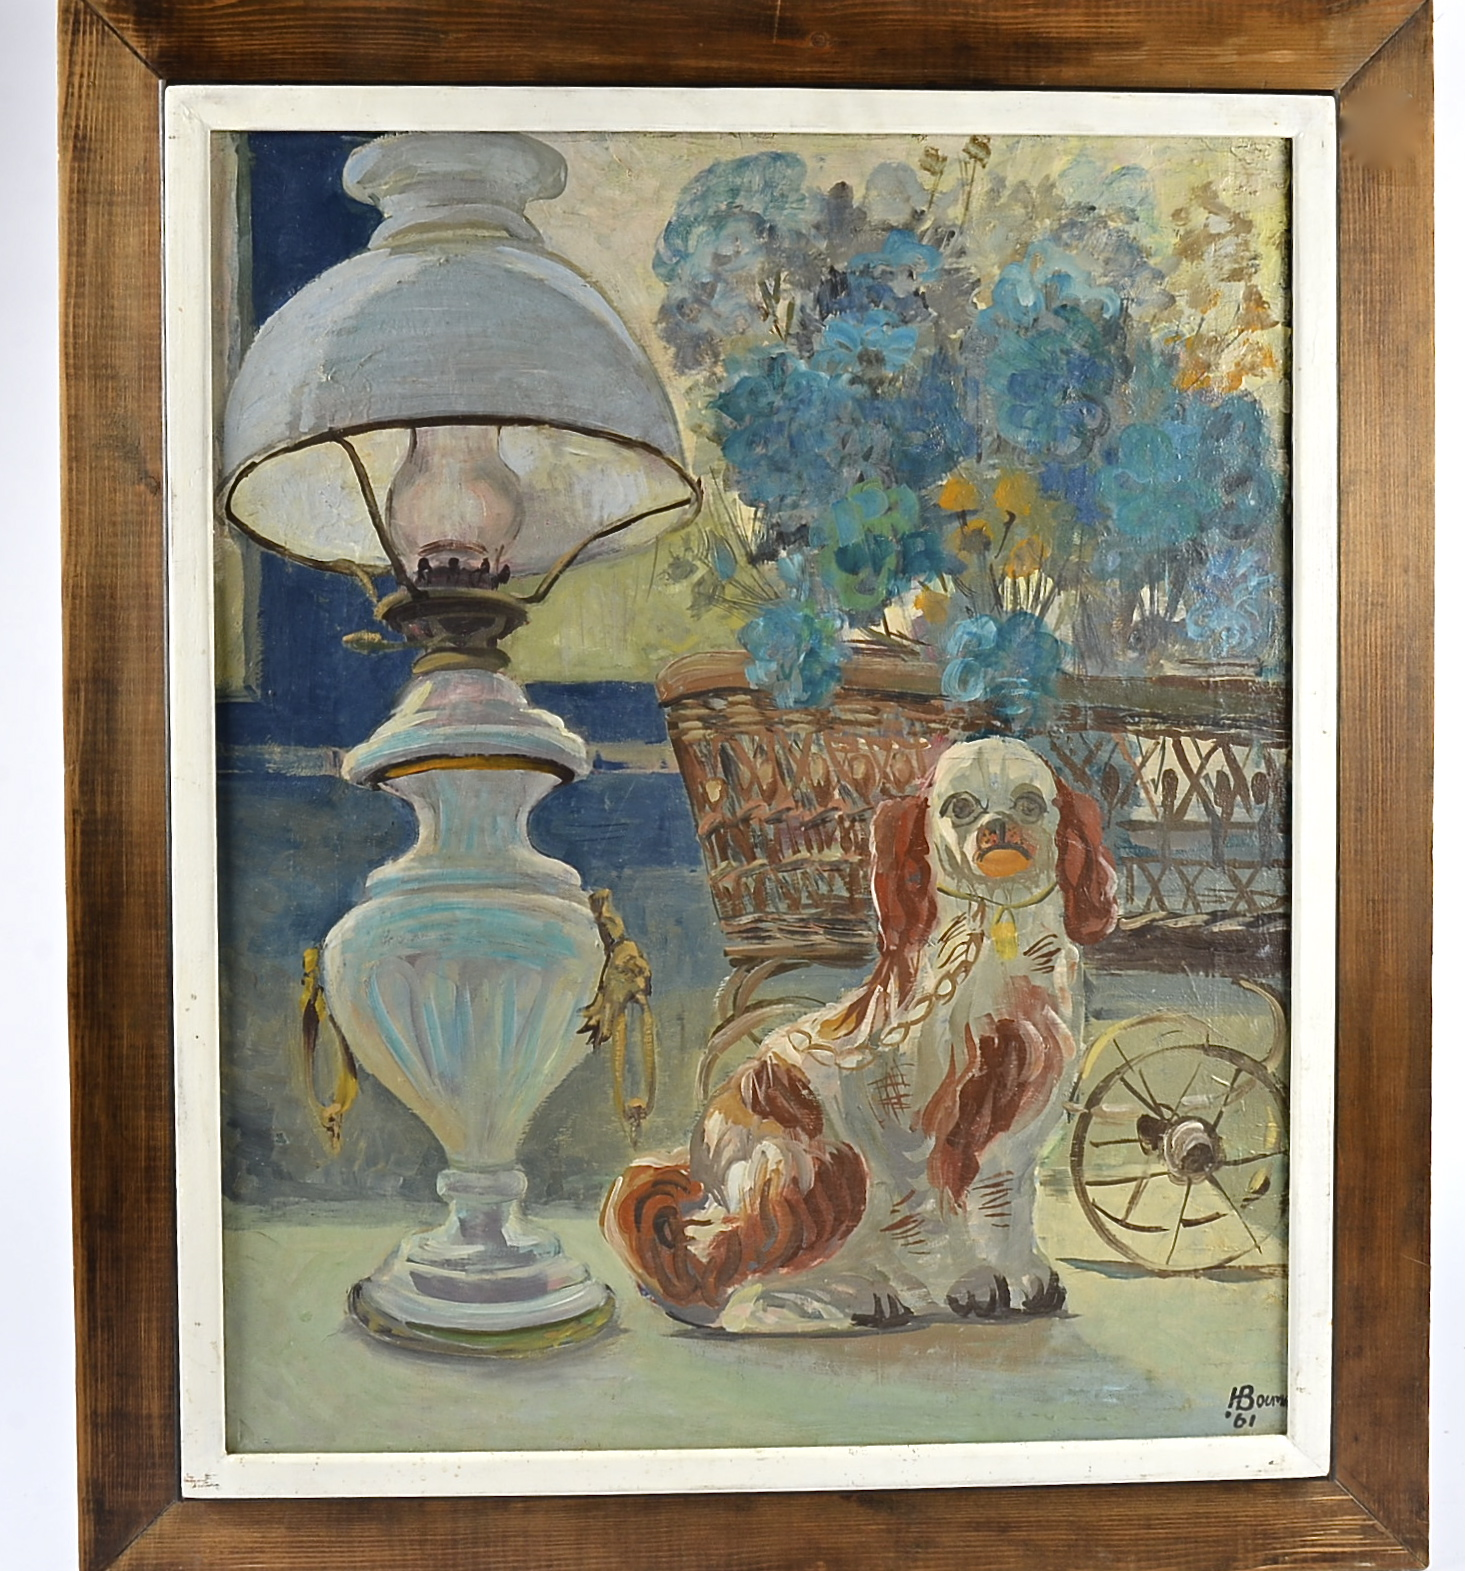 Lot 223 - 20th Century oil on canvas, ceramic model of a Cavalier King Charles spaniel and lamp and flower